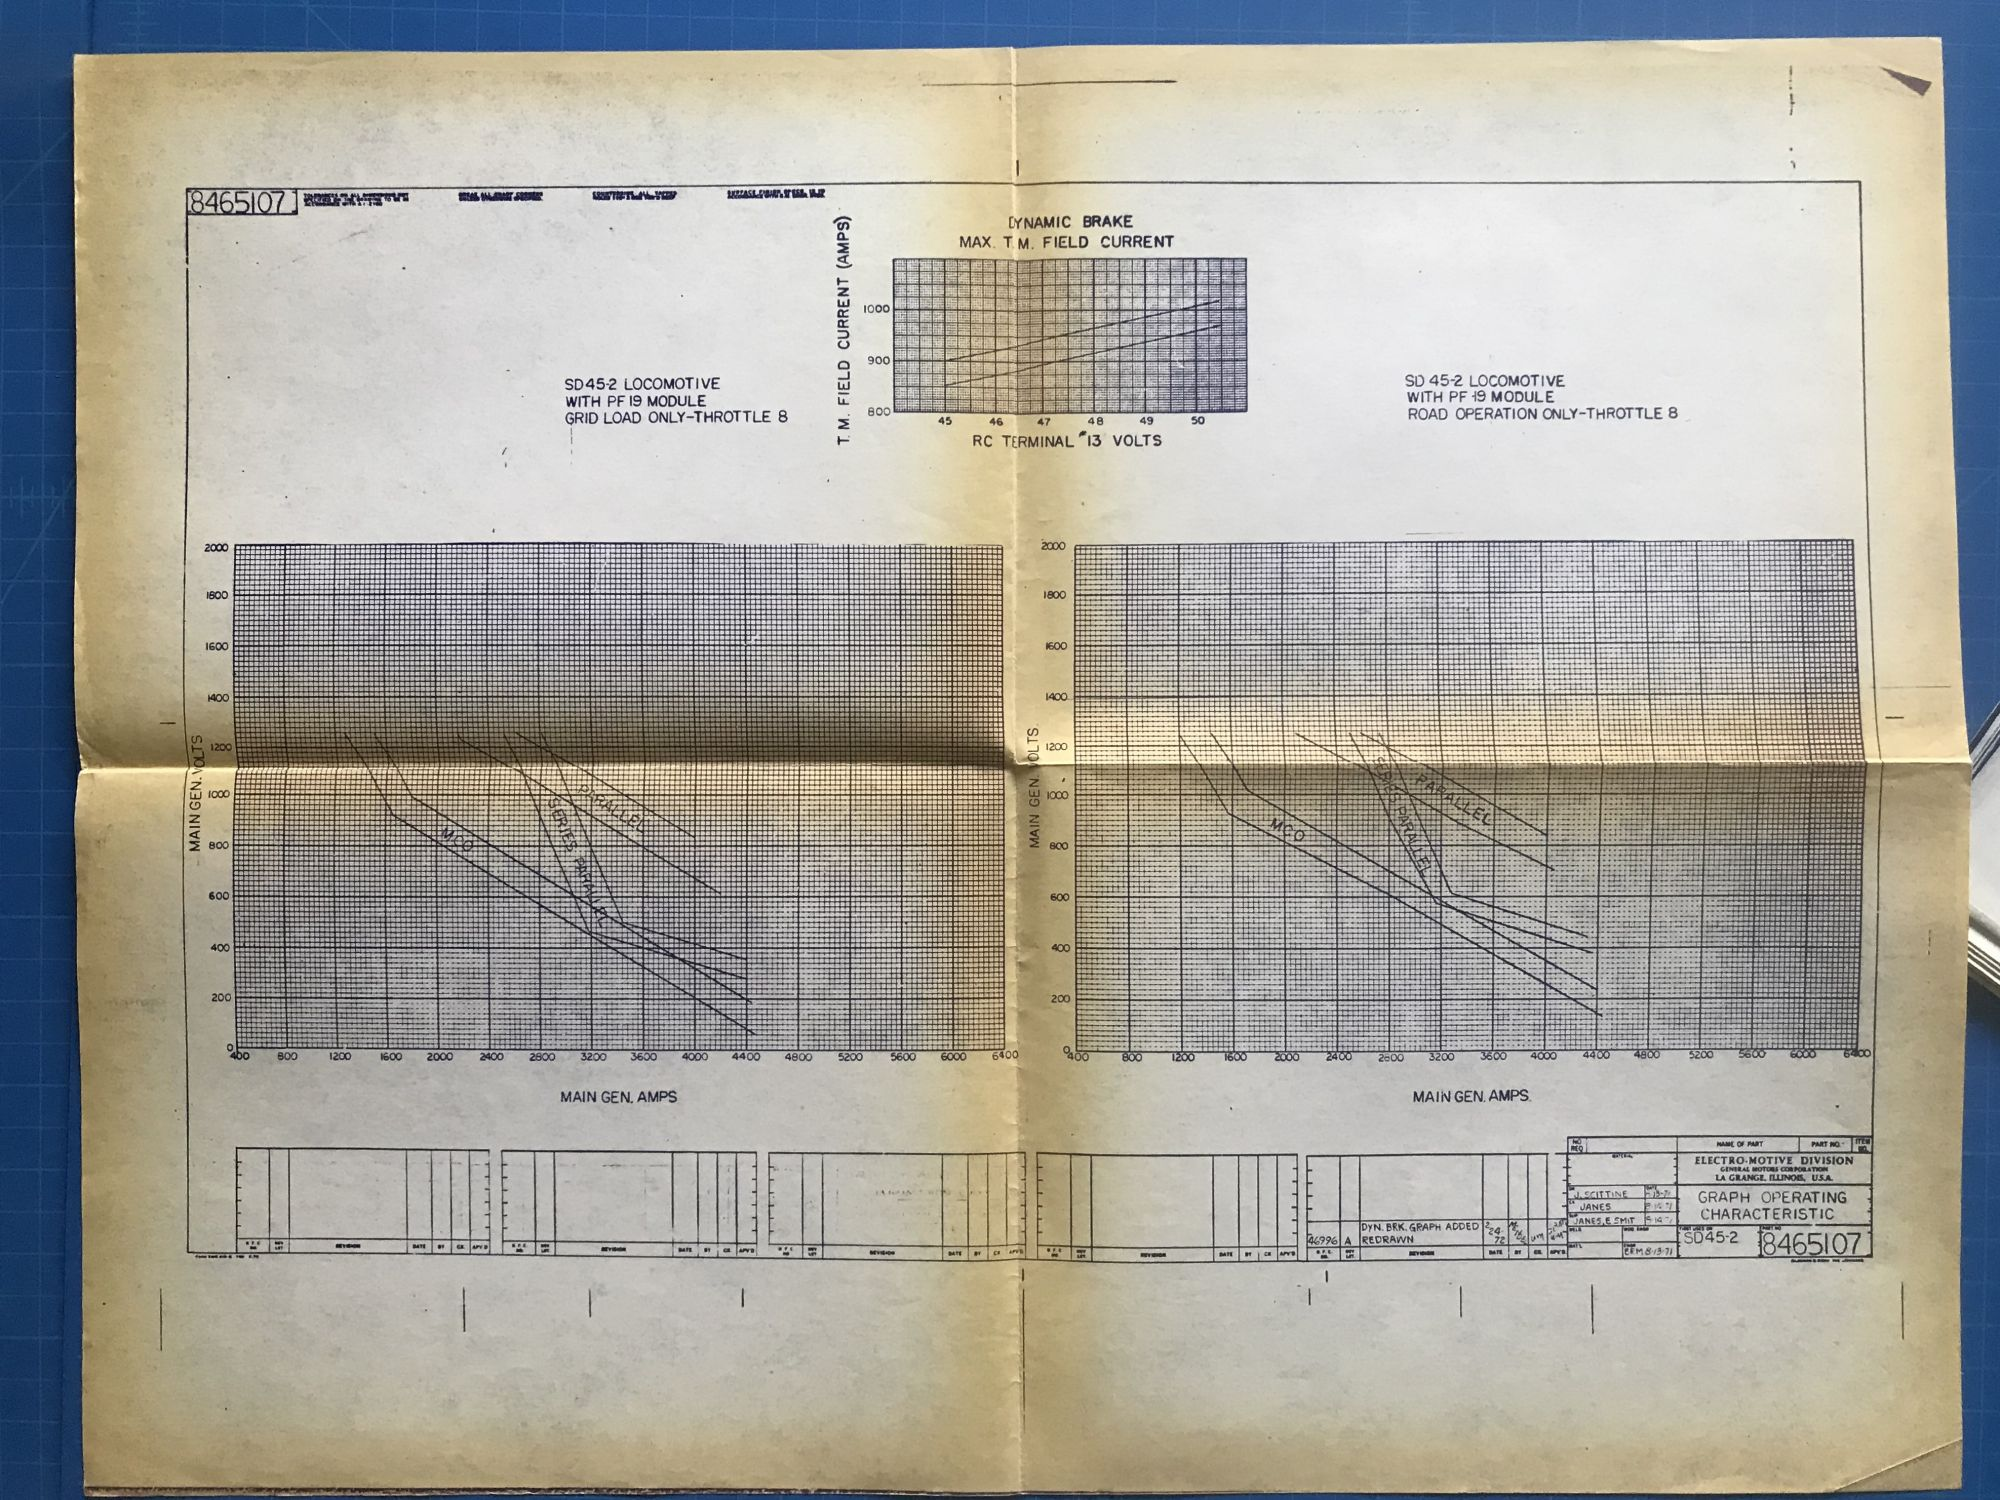 locomotive wiring diagrams collection of locomotive schematic wiring diagrams  maintenance  locomotive schematic wiring diagrams